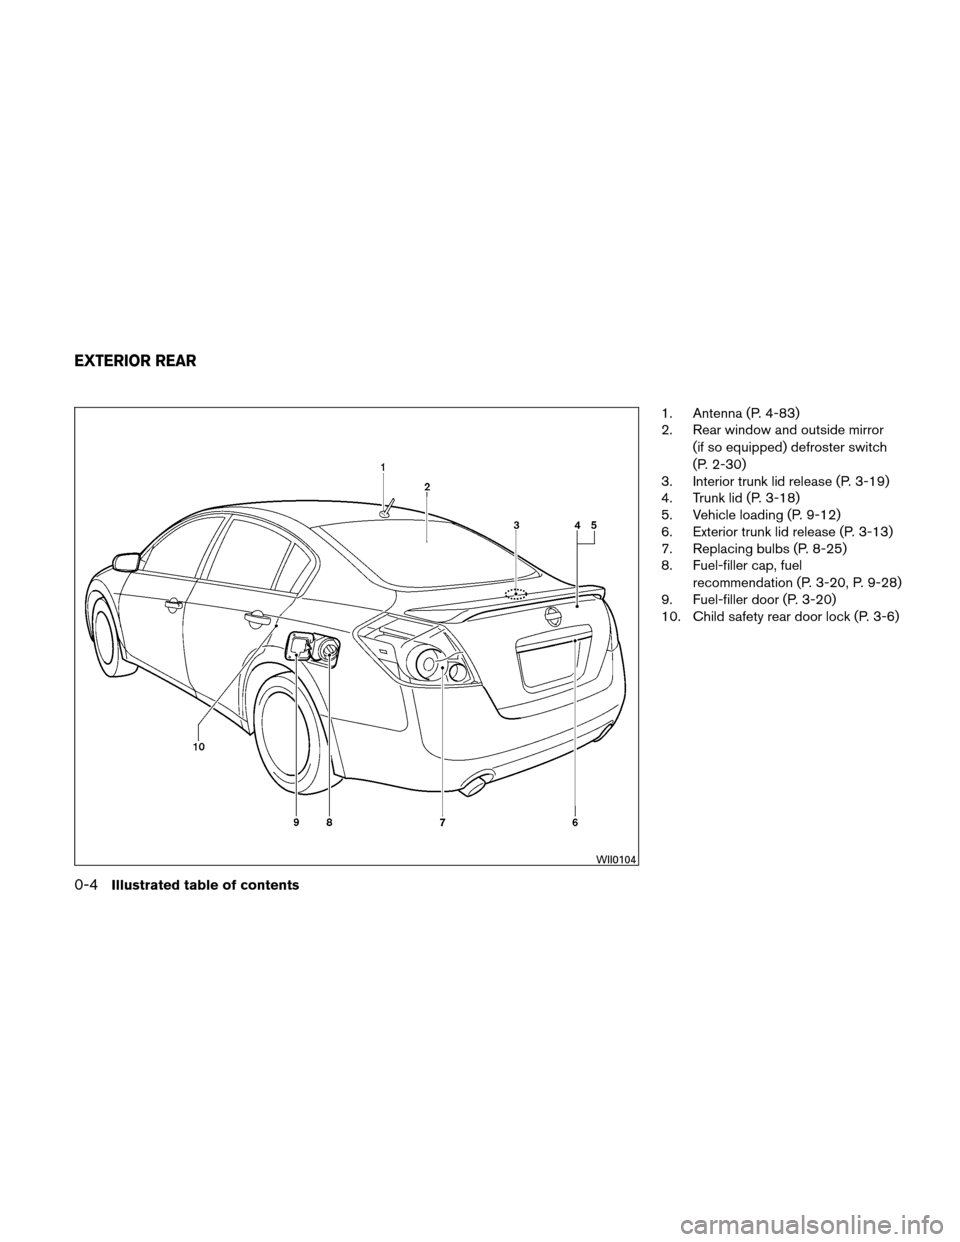 NISSAN ALTIMA HYBRID 2011 L32A / 4.G Owners Manual, Page 23